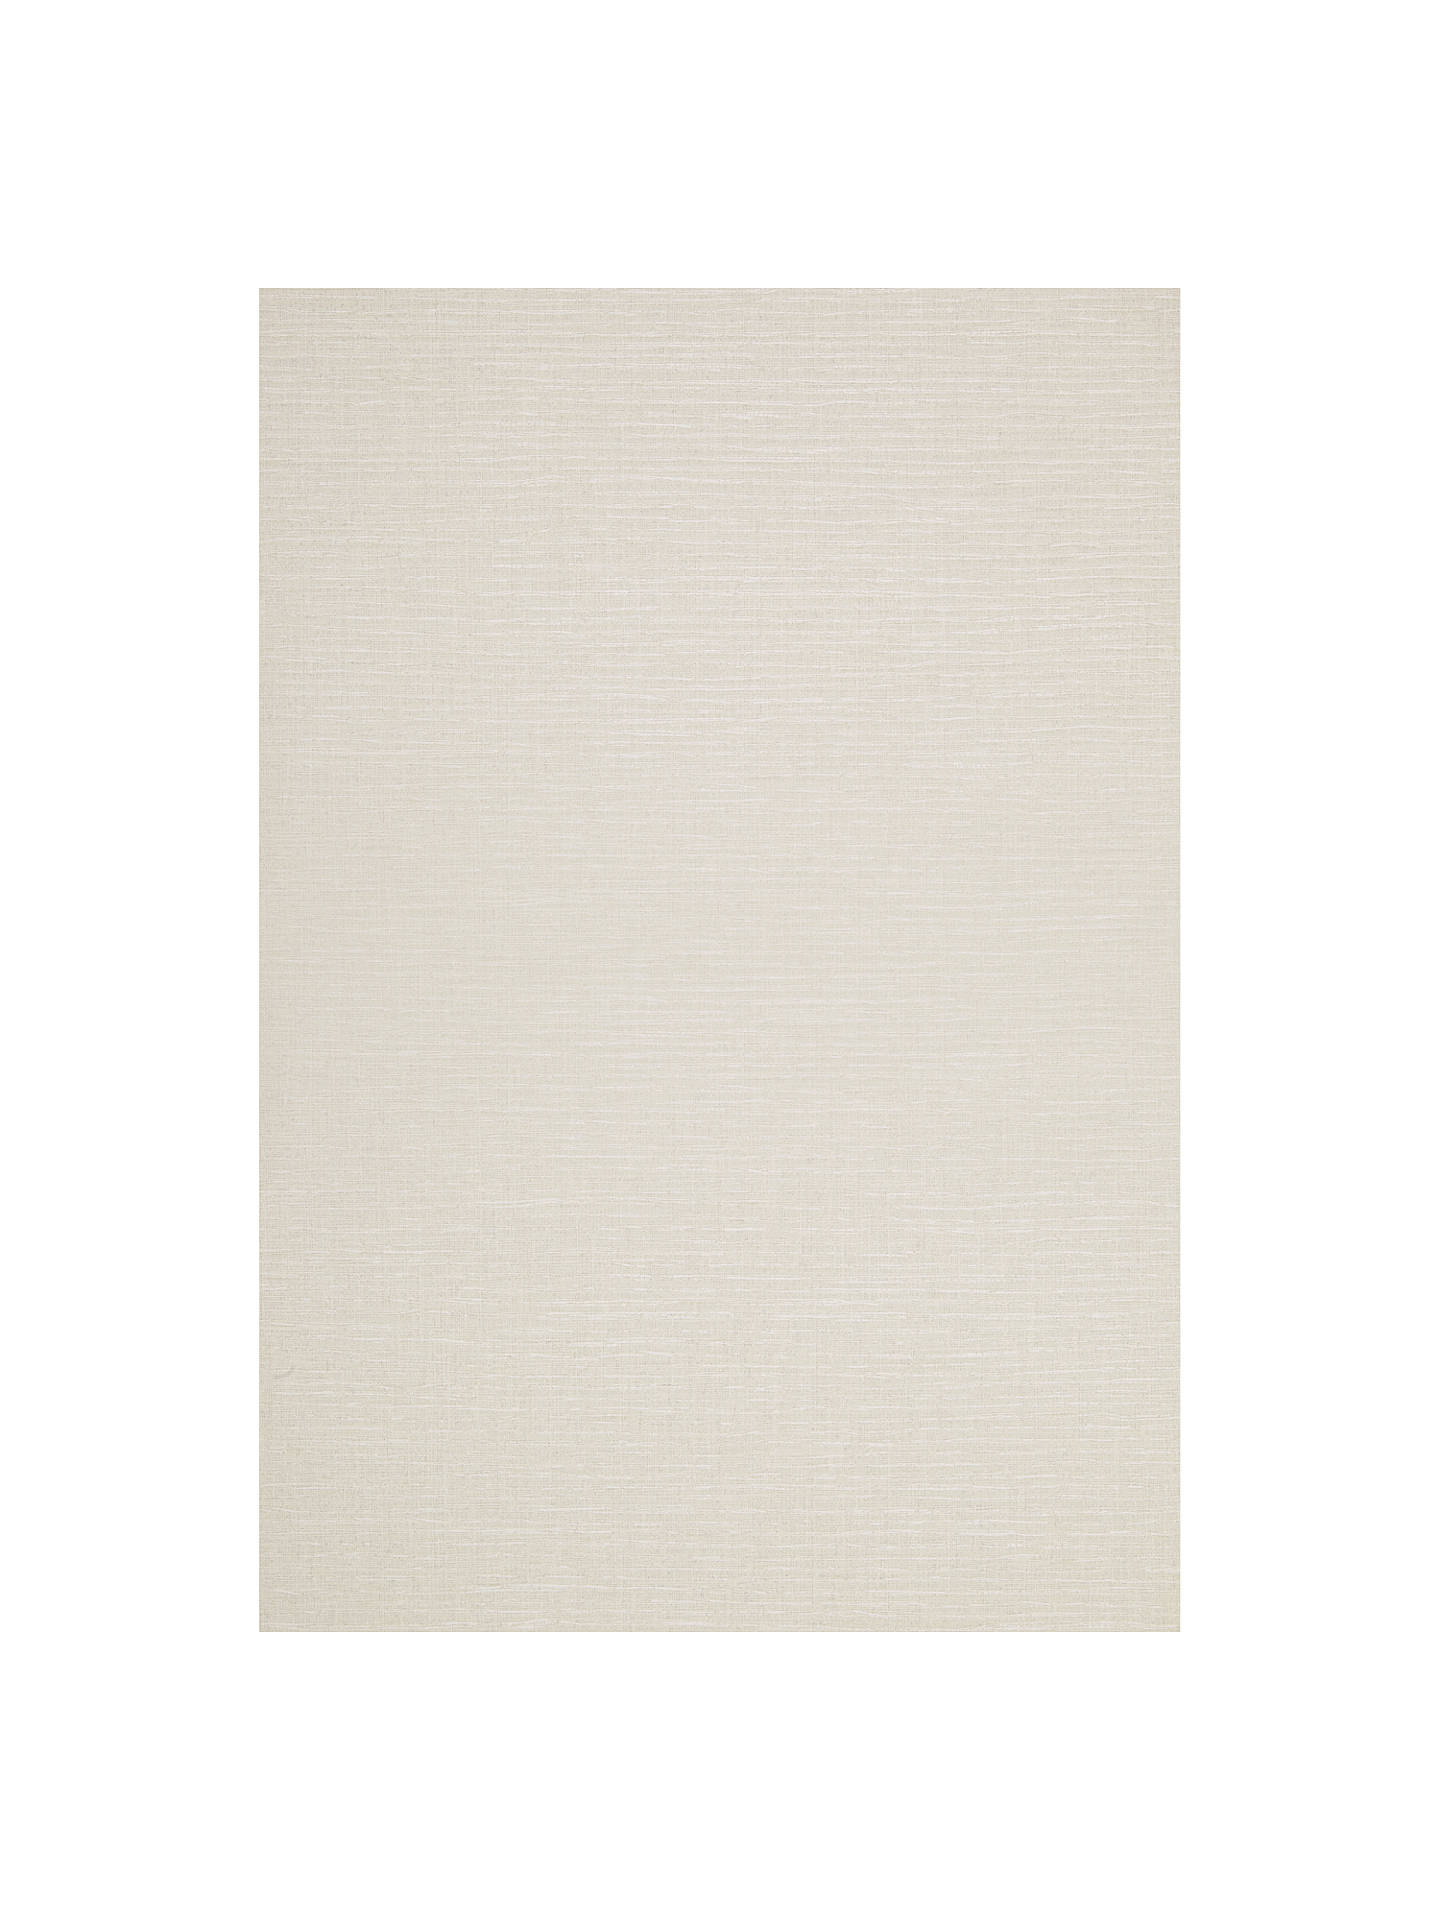 Buy John Lewis & Partners Mineral Texture Wallpaper, Pearl Online at johnlewis.com